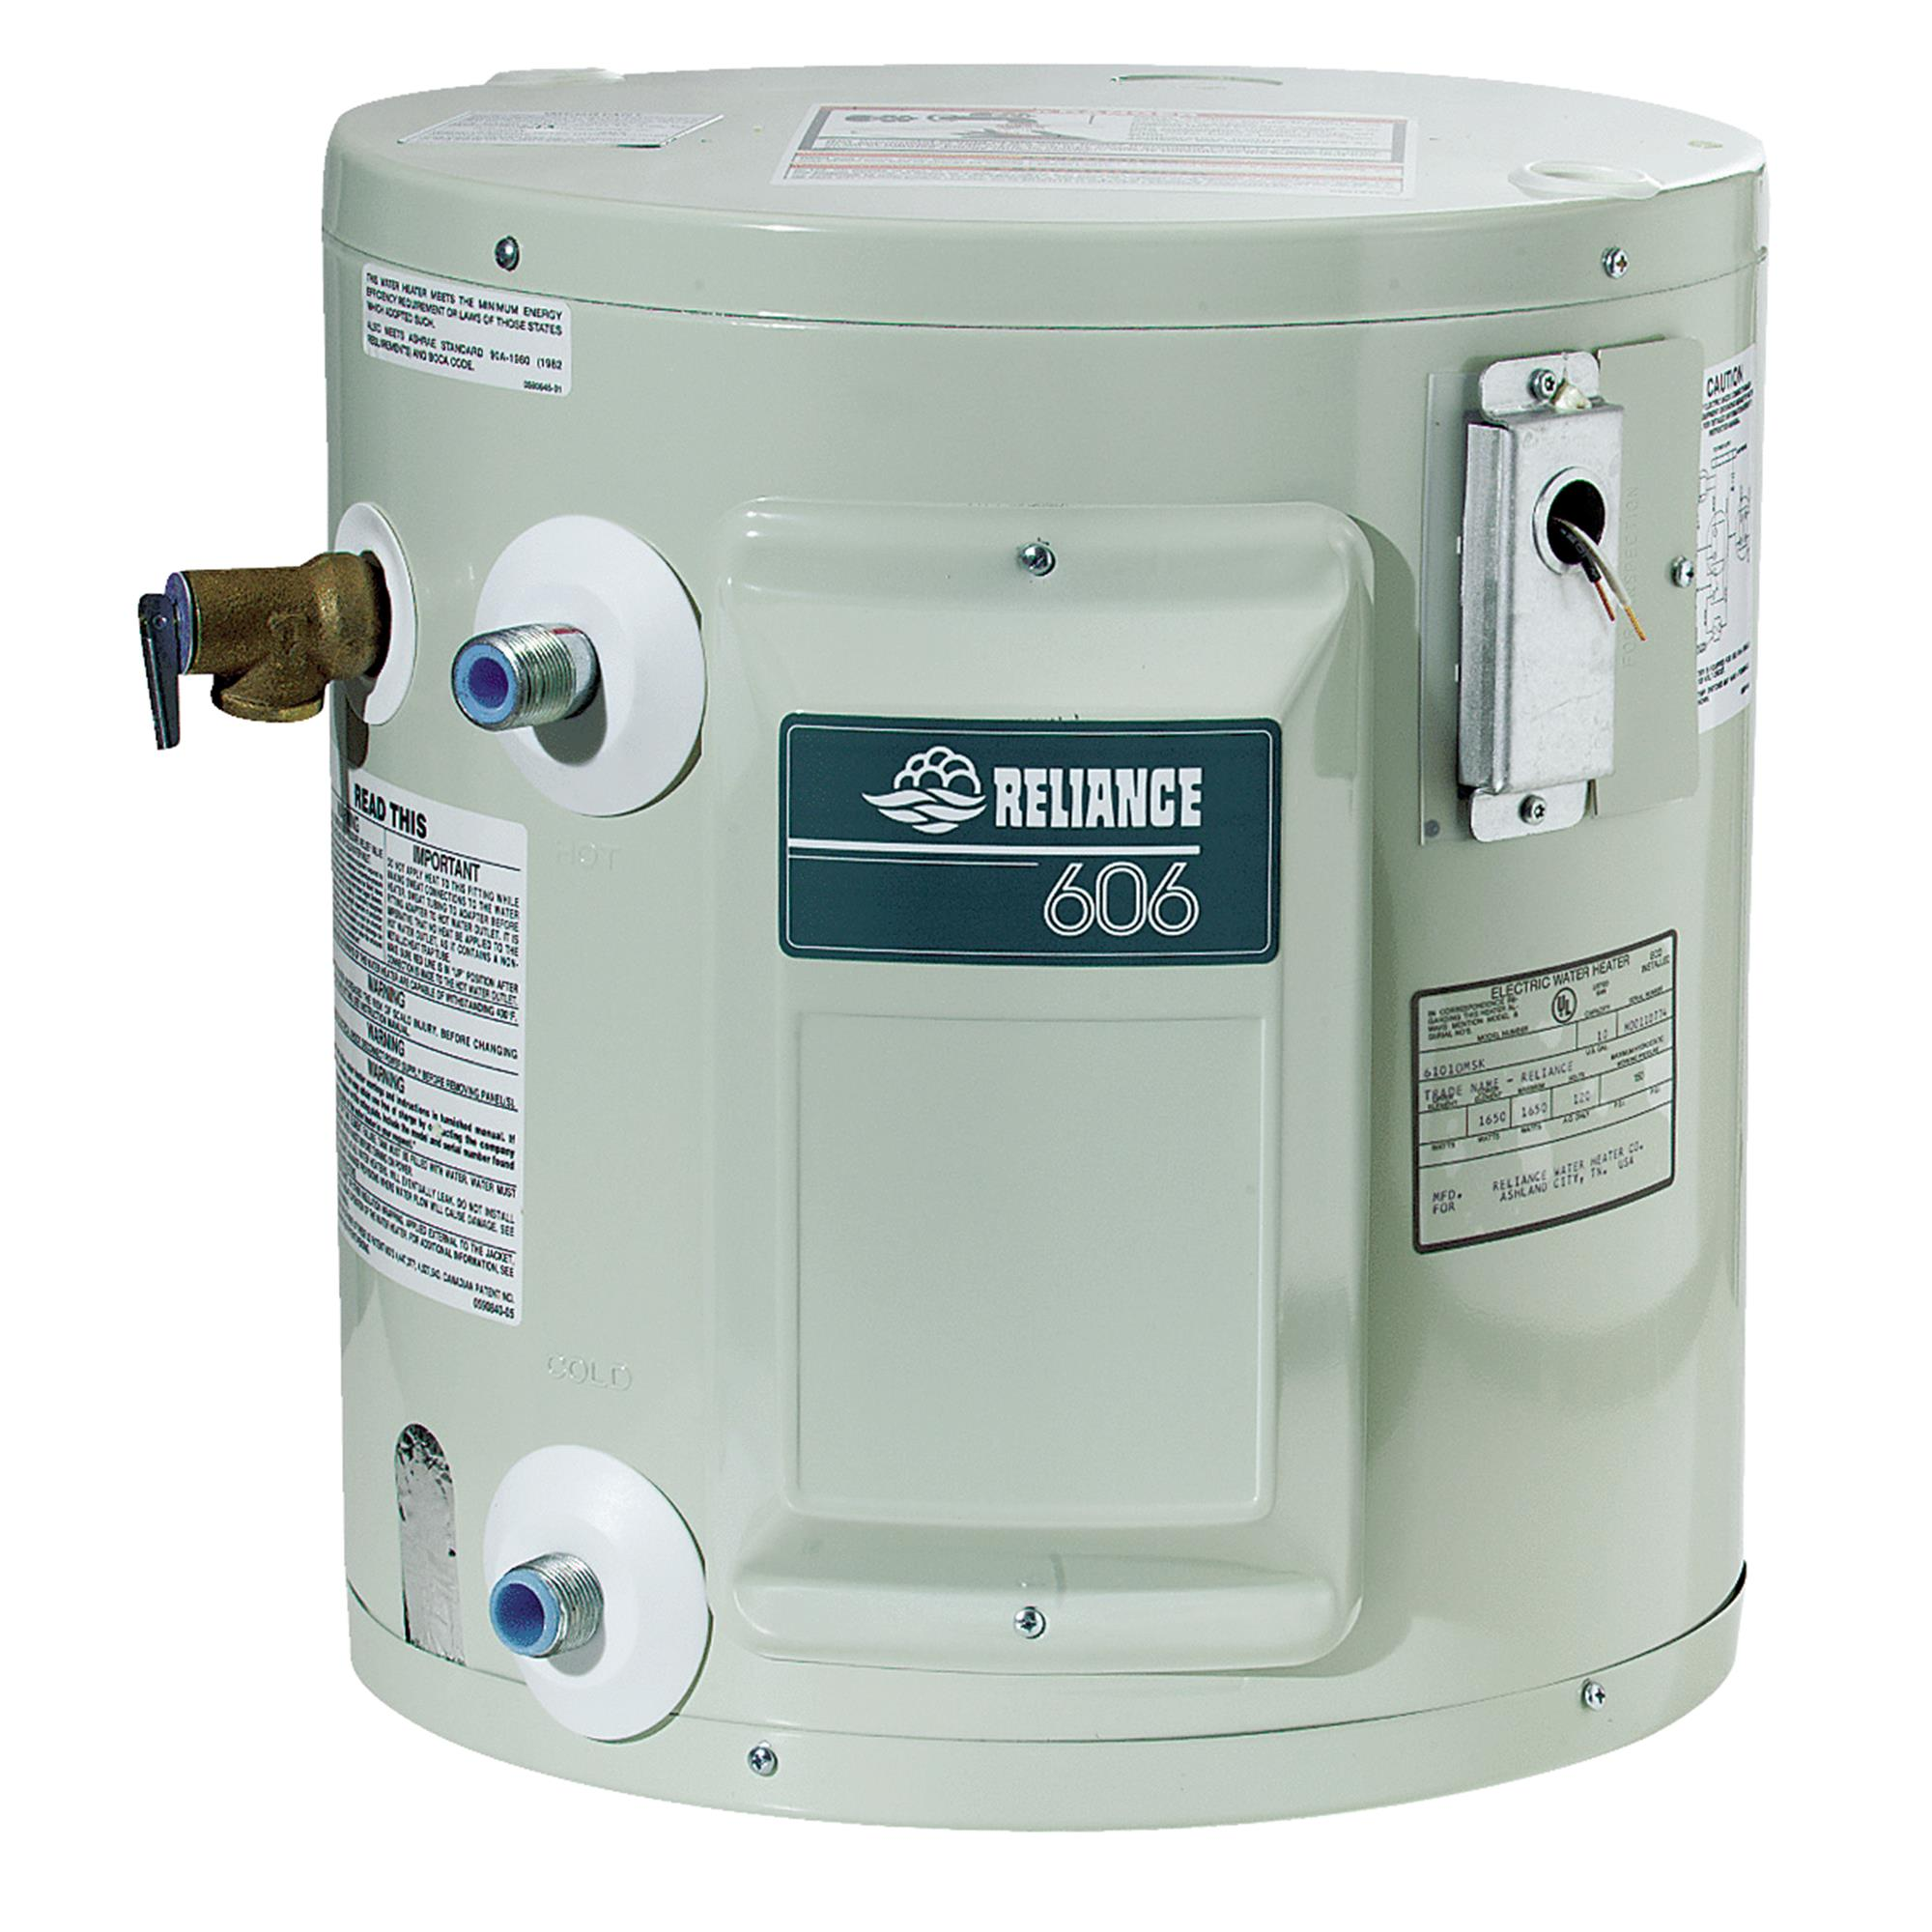 Reliance Compact Utility Electric Water Heater